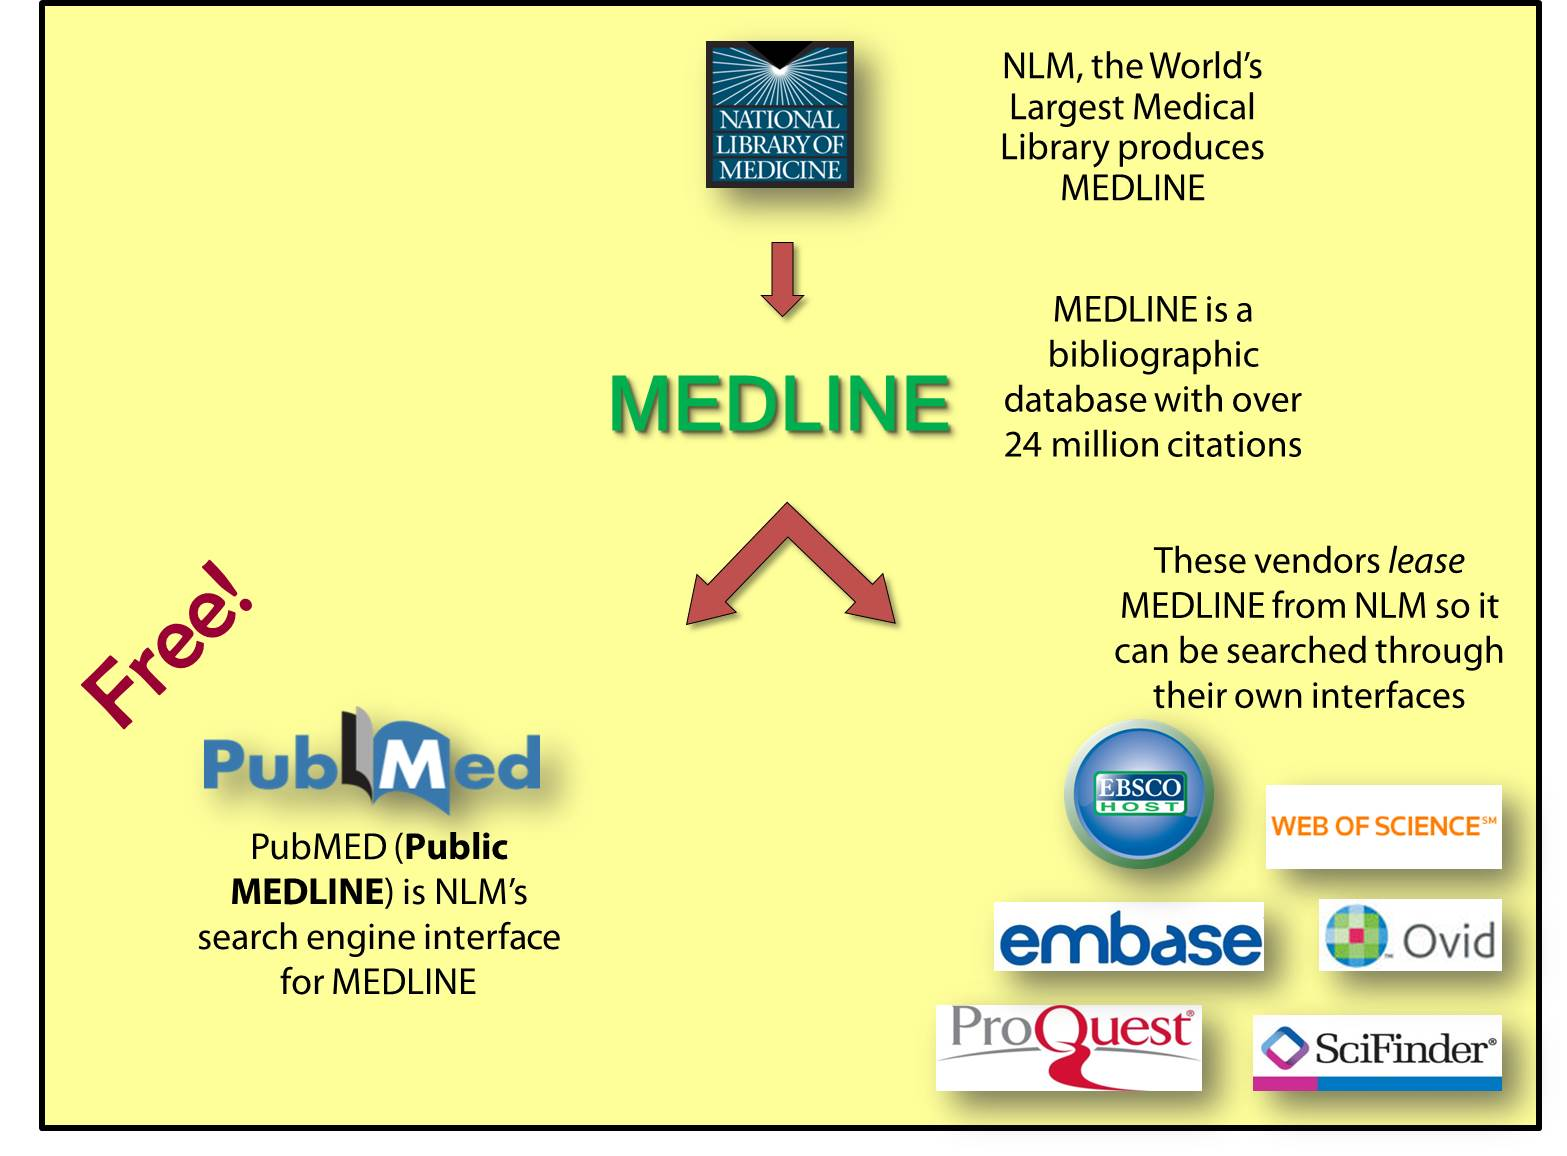 getting started - pubmed - searching medical literature